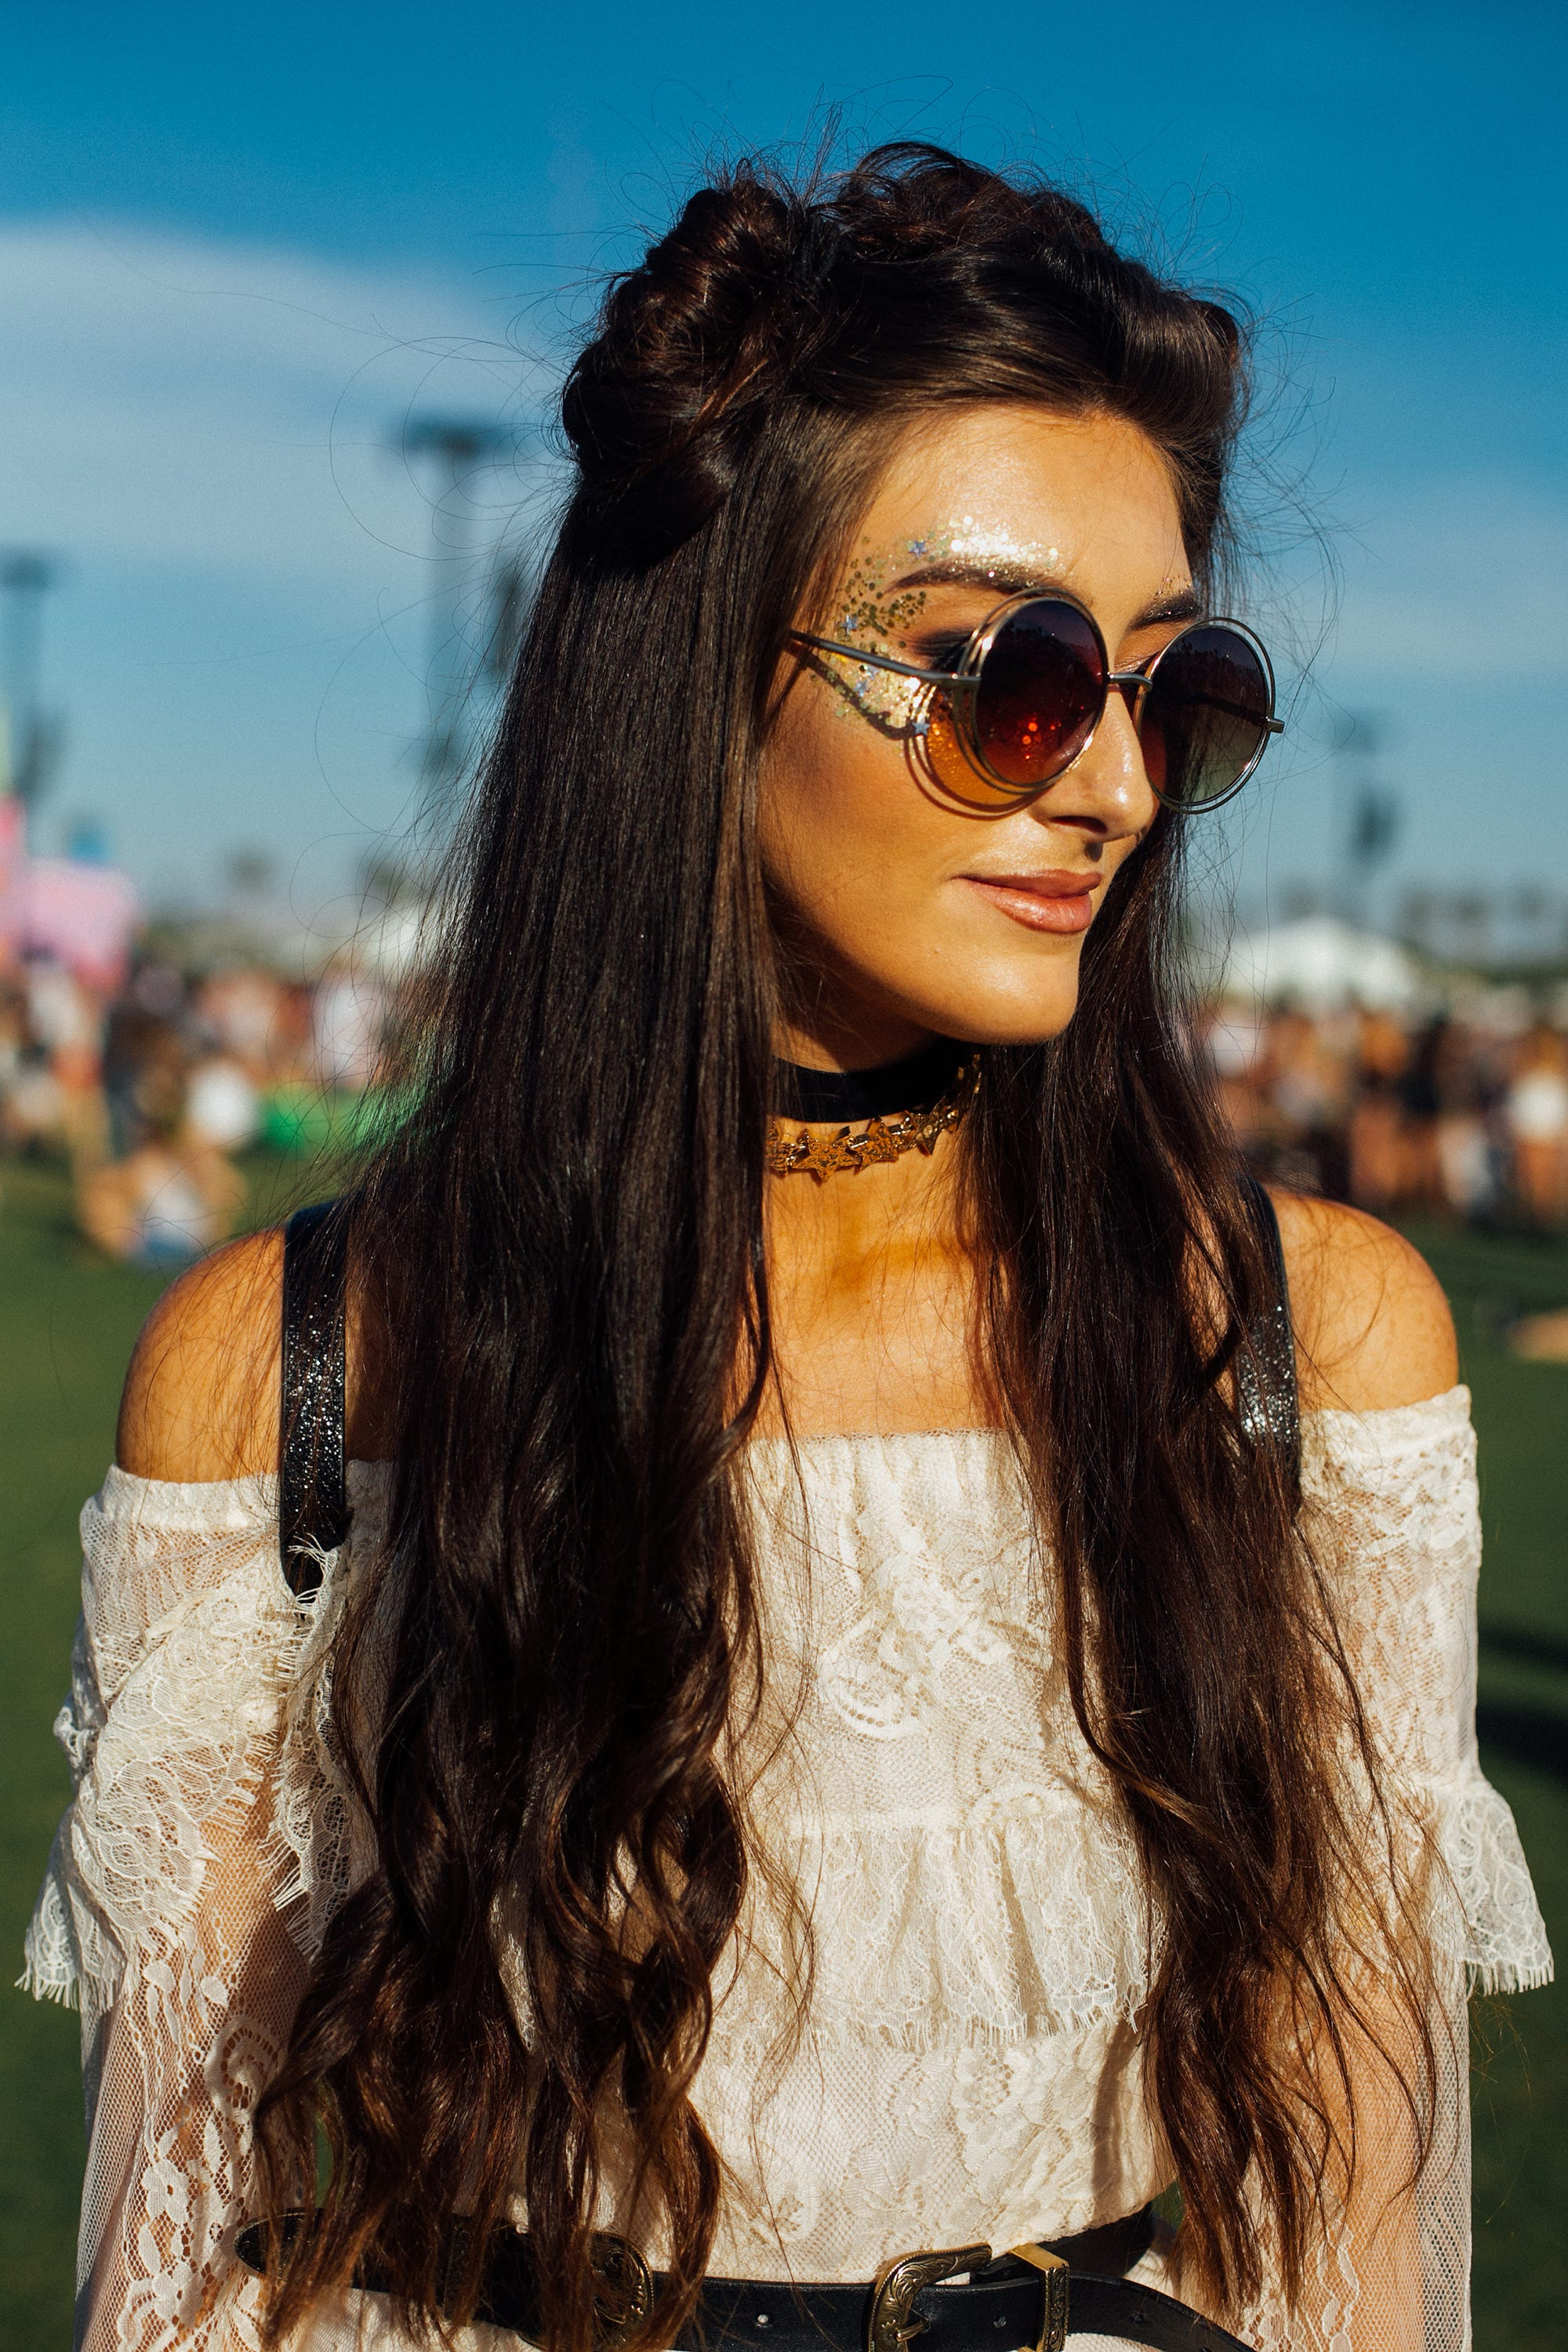 Haircut Styles For Long Thin Hair: Space Buns Hairstyle Look